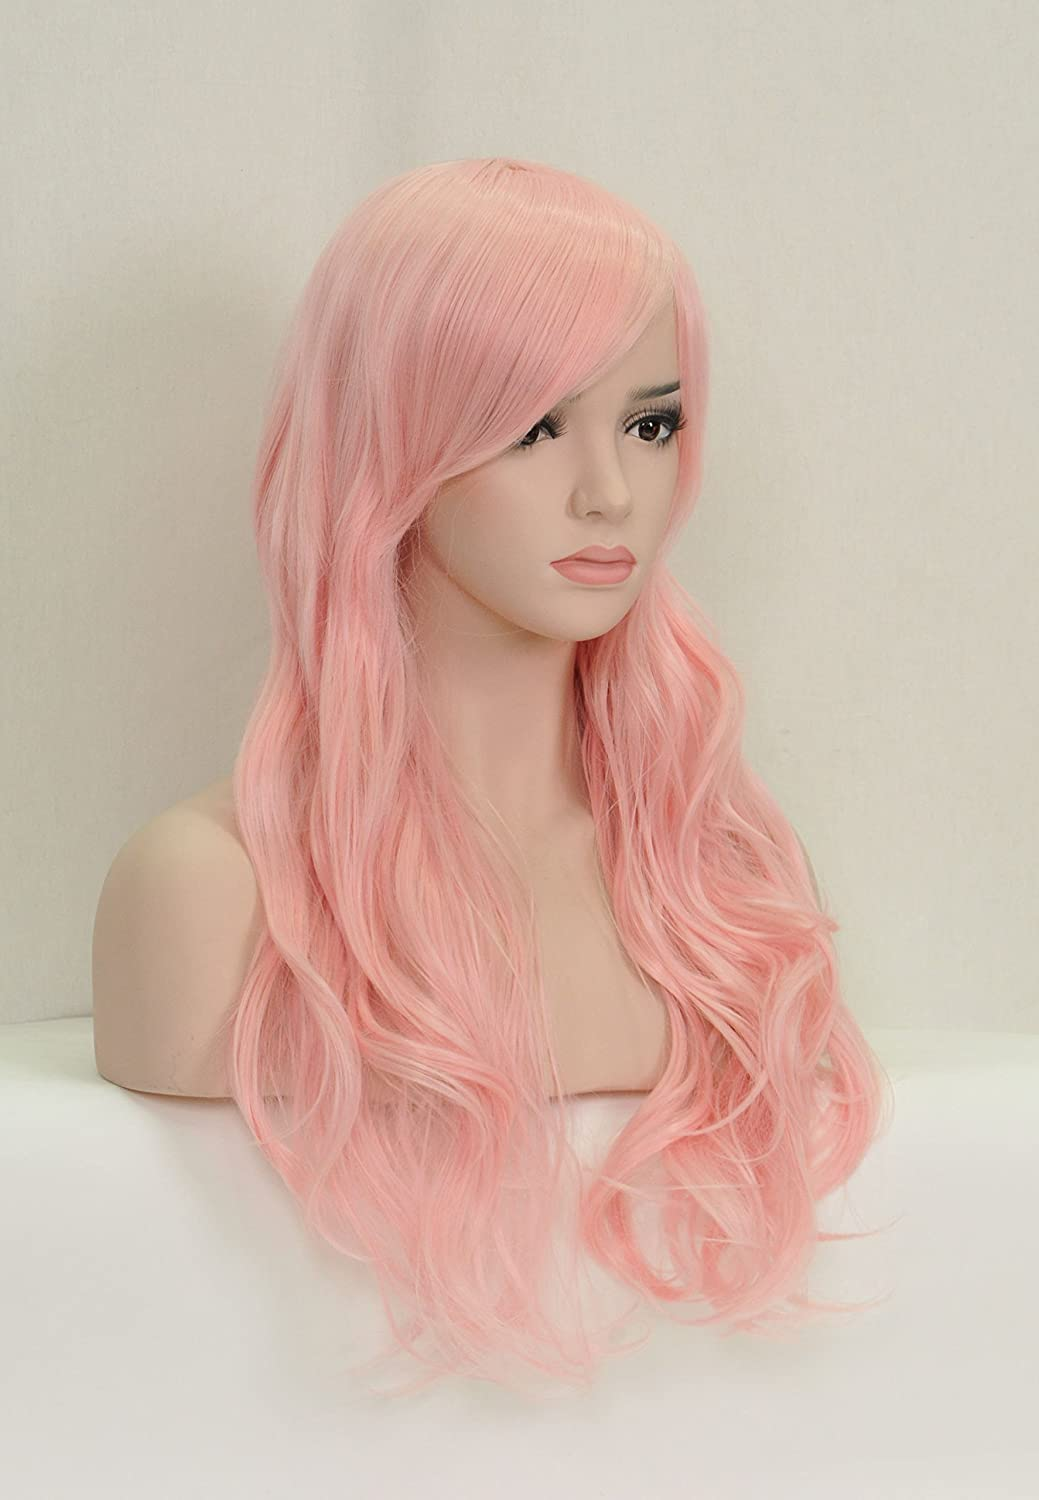 Beauty Smooth Hair Mujeres largo longitud lockiges hölle de color rosa pelo Perú esquina con Completo Pony Cosplay: Amazon.es: Belleza